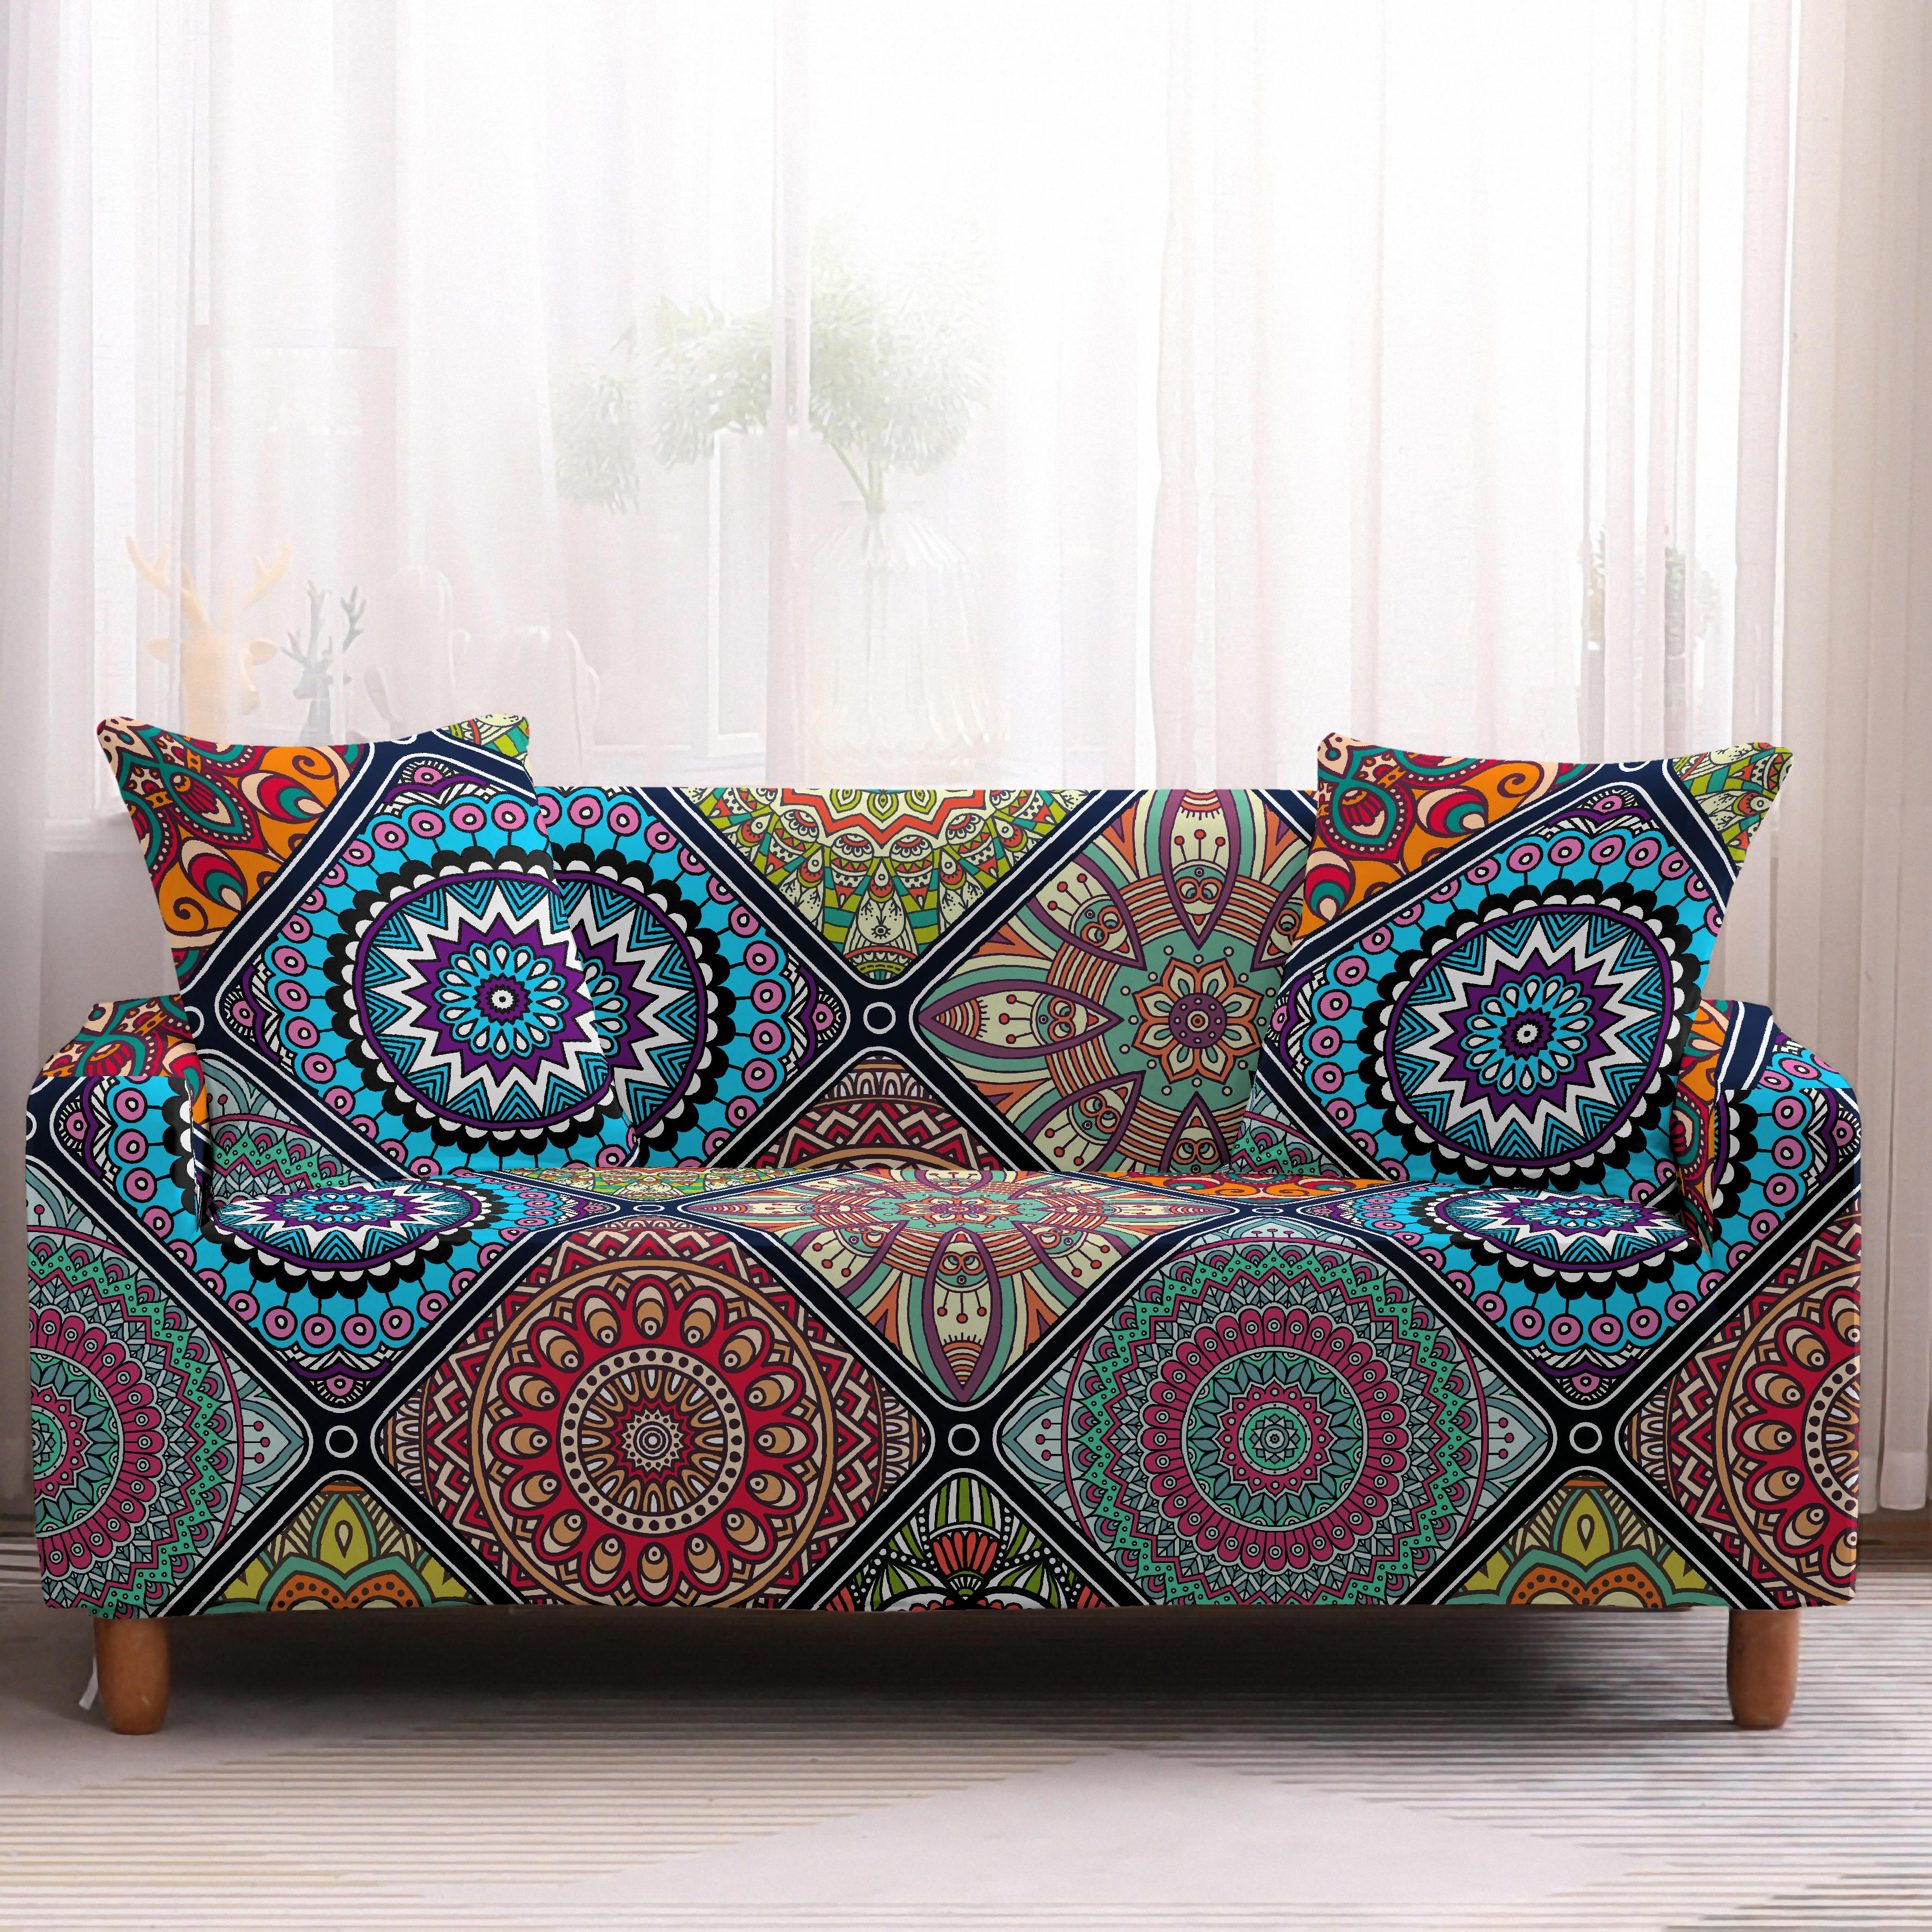 Bohemia Slipcovers Sofa Cover in Mandala Pattern to Protect Living Room Furniture from Stains and Dust 5